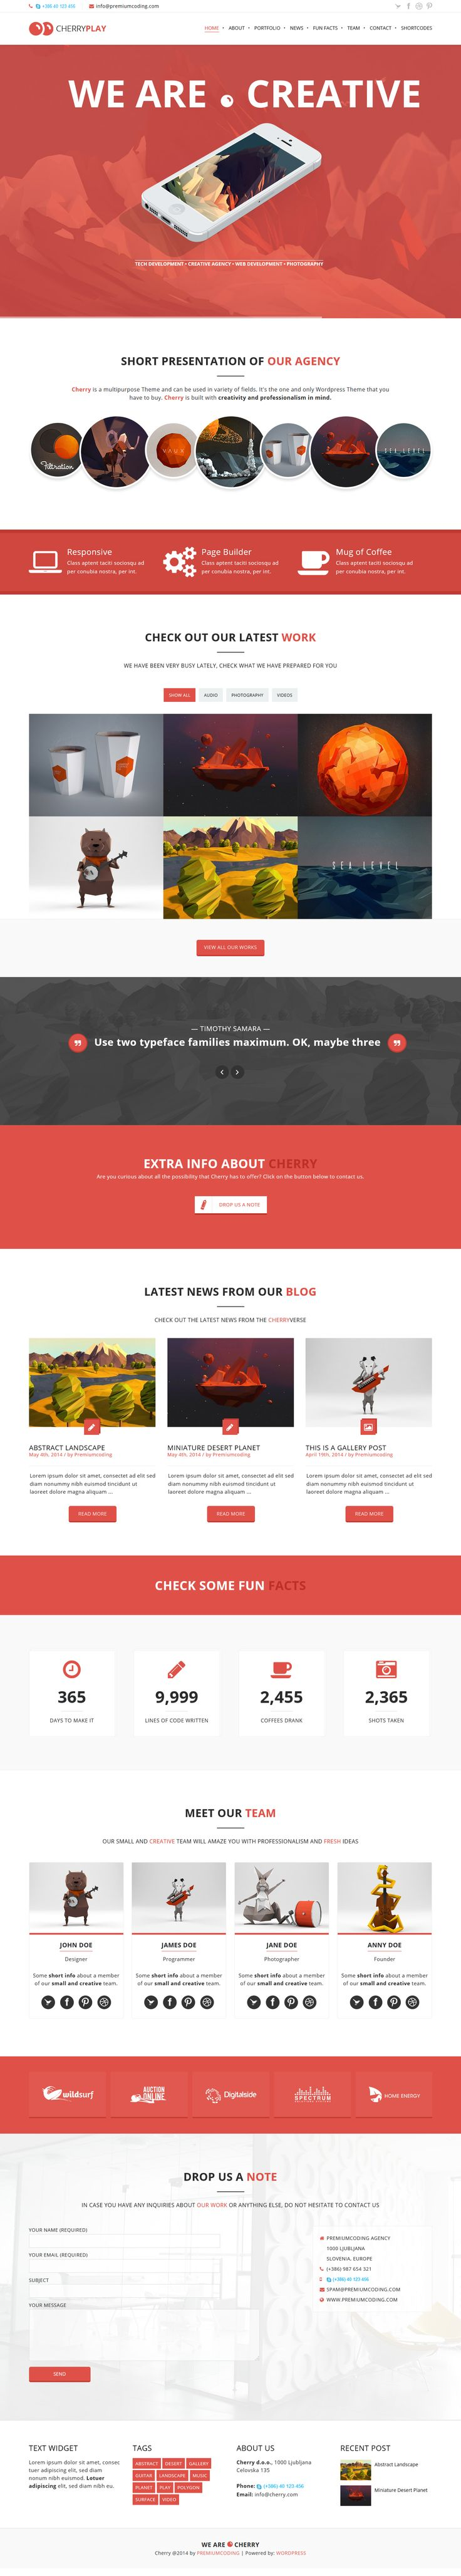 20 best sales page design images on pinterest design websites collections of the best wordpress themes web design templates creative wordpress themes top business wordpress themes best premium wordpress themes fandeluxe Image collections